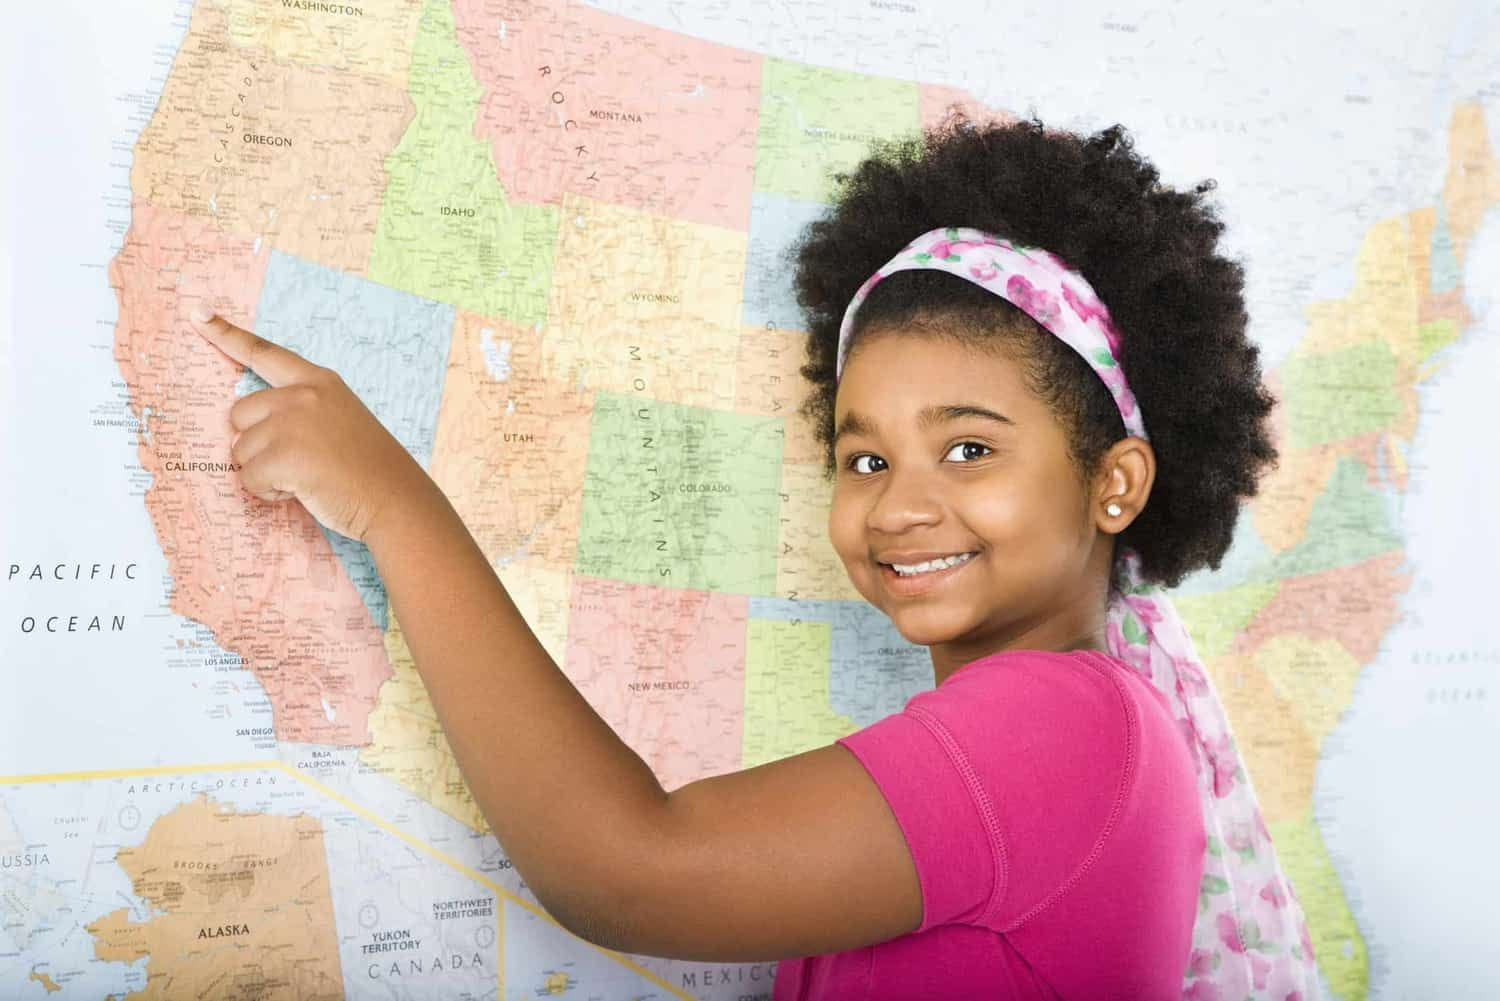 Girl pointing to map of the United States